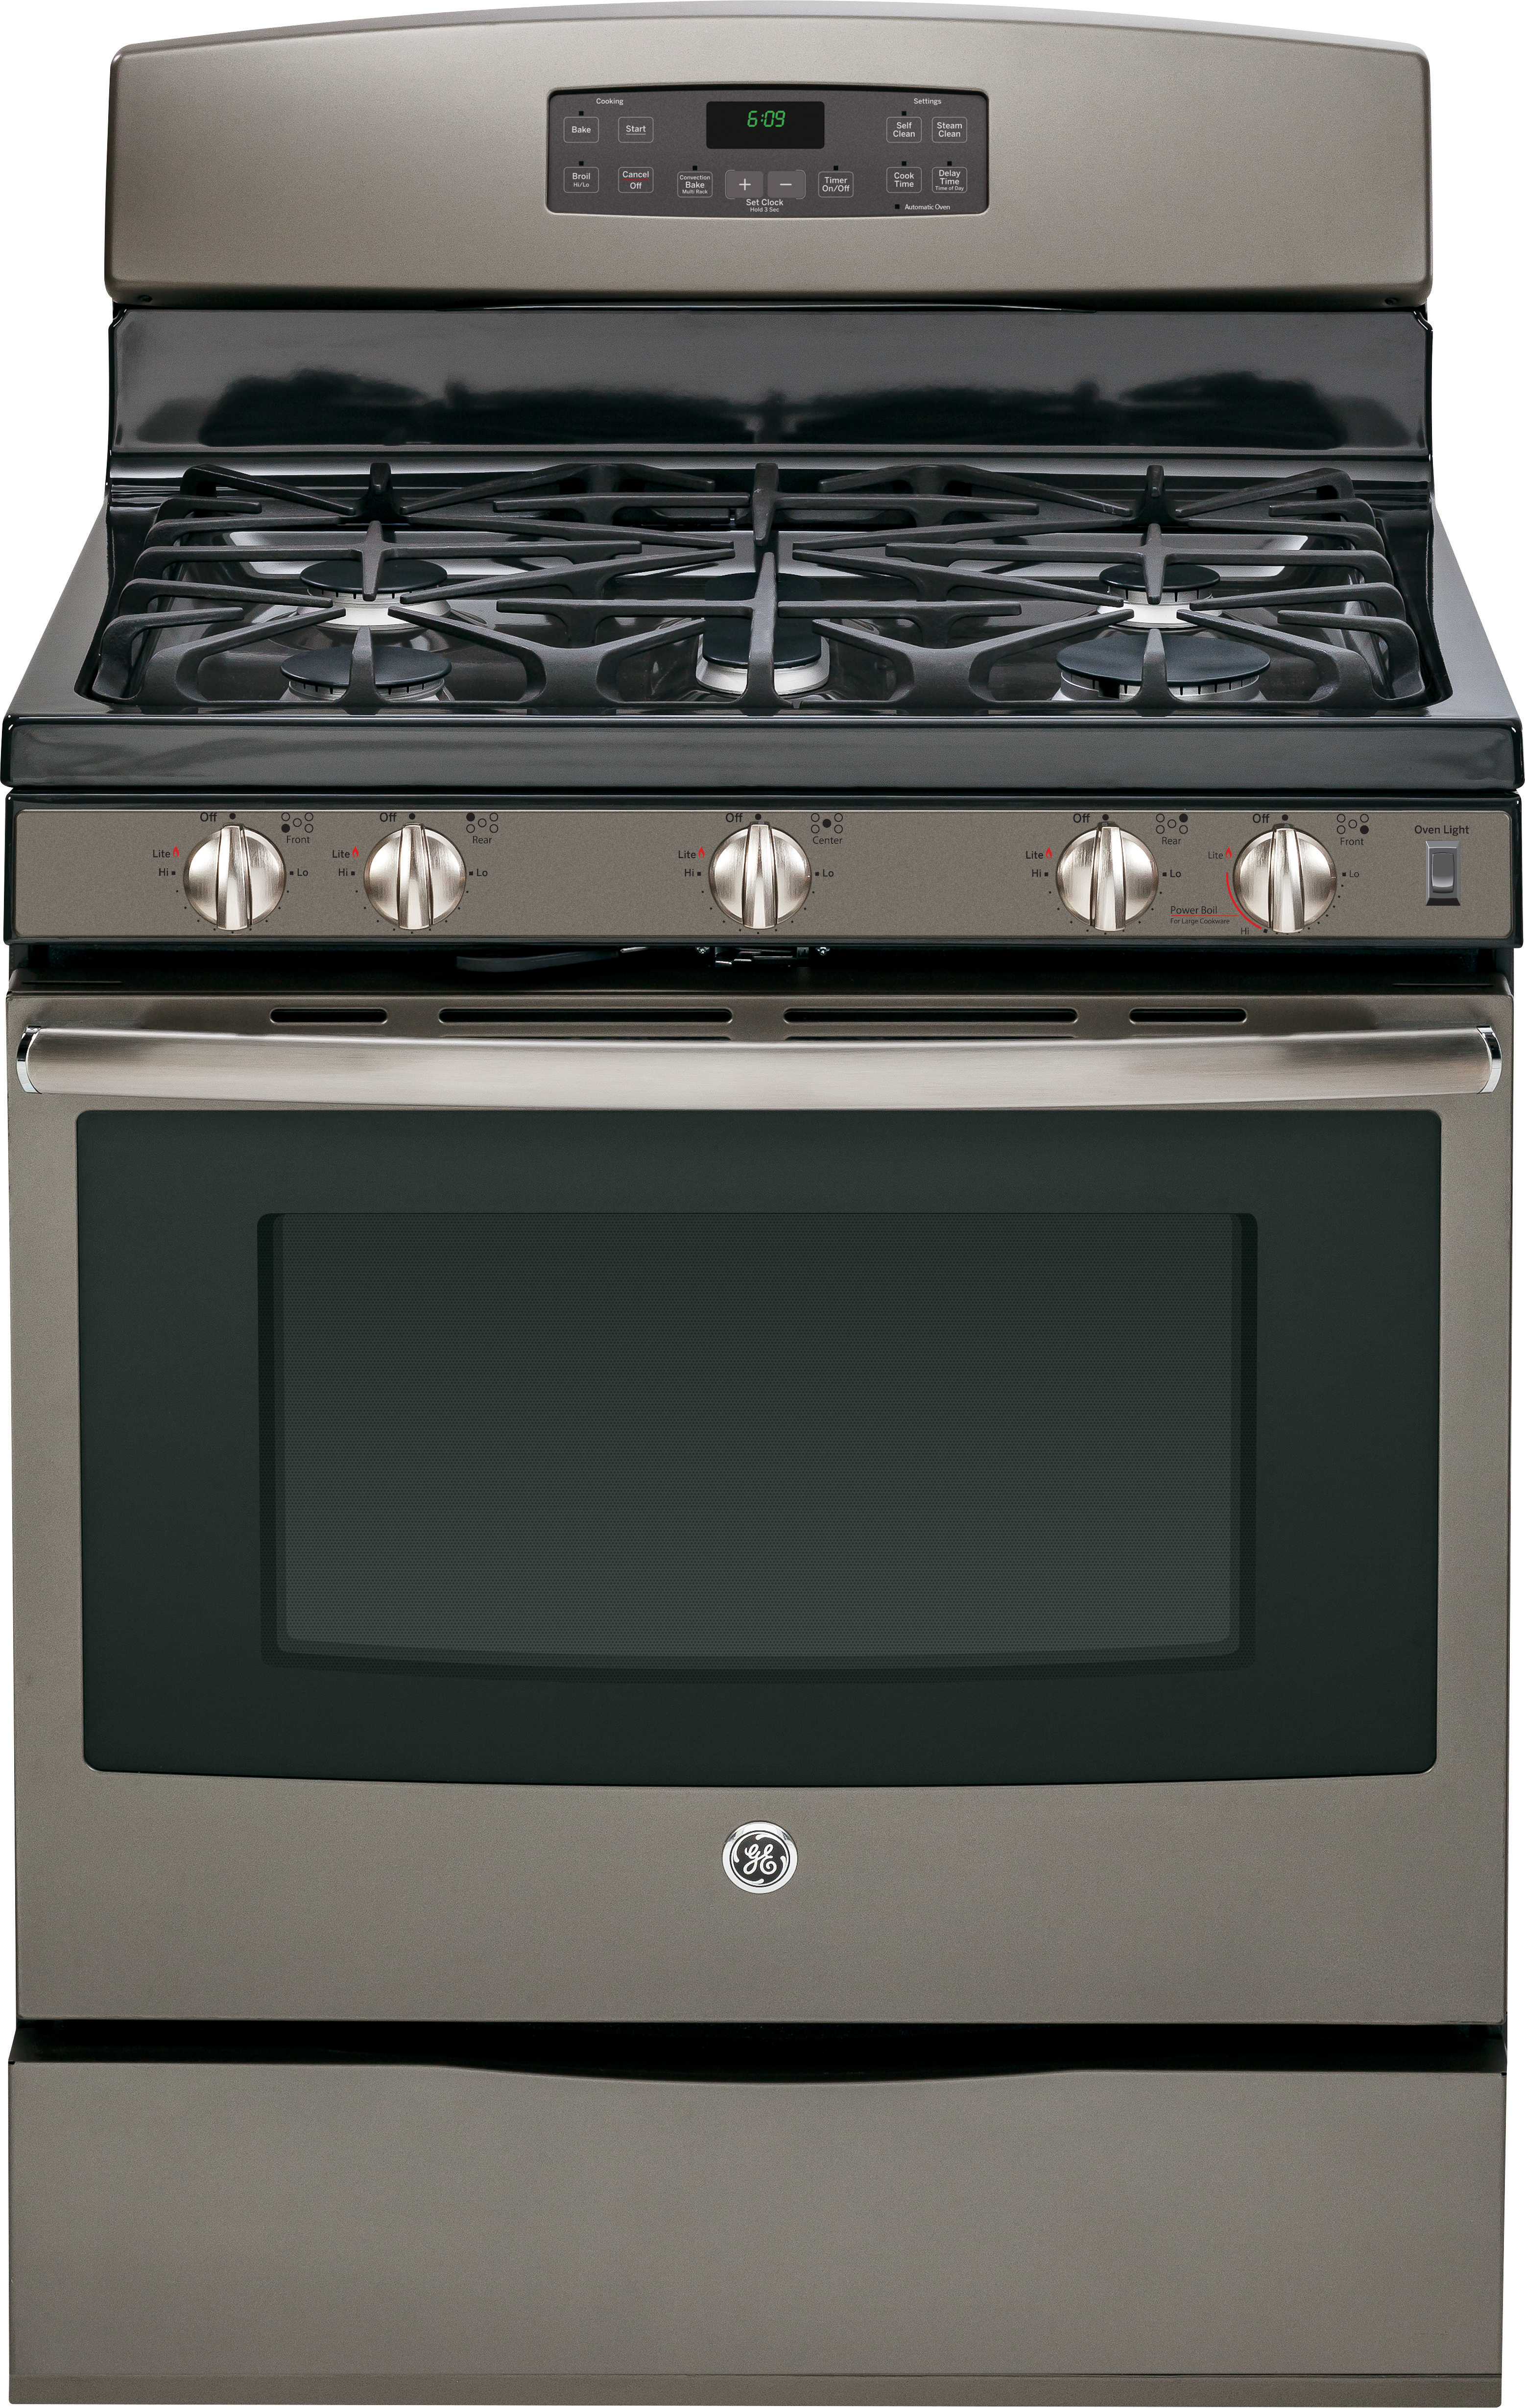 sleek and chic: ge expands popular slate finish to more appliances